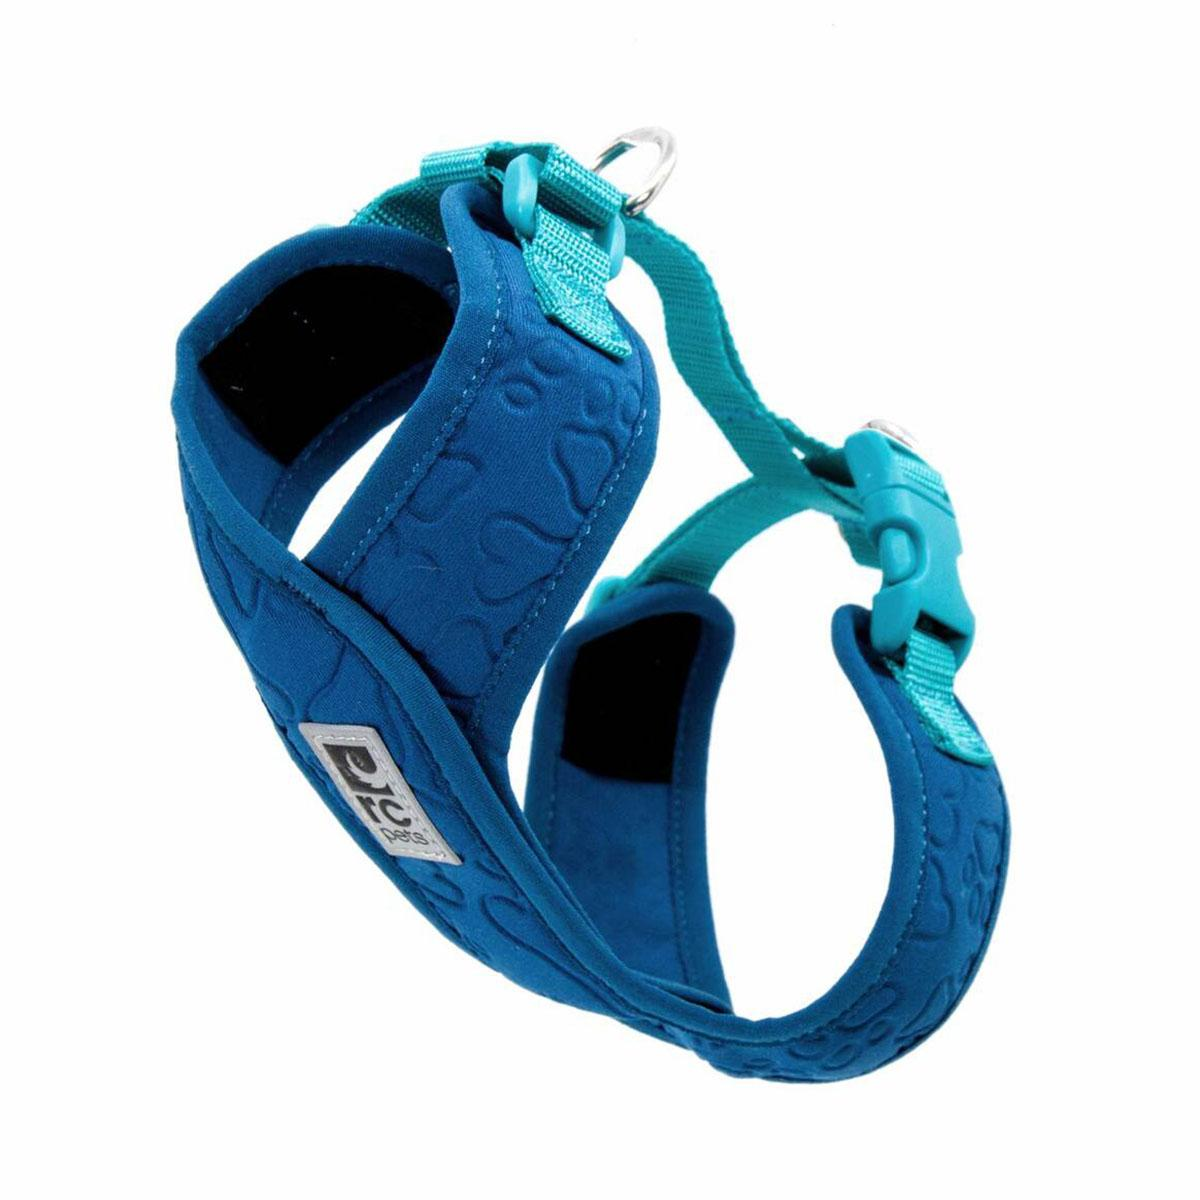 Swift Comfort Dog Harness by RC Pets - Dark Teal / Teal